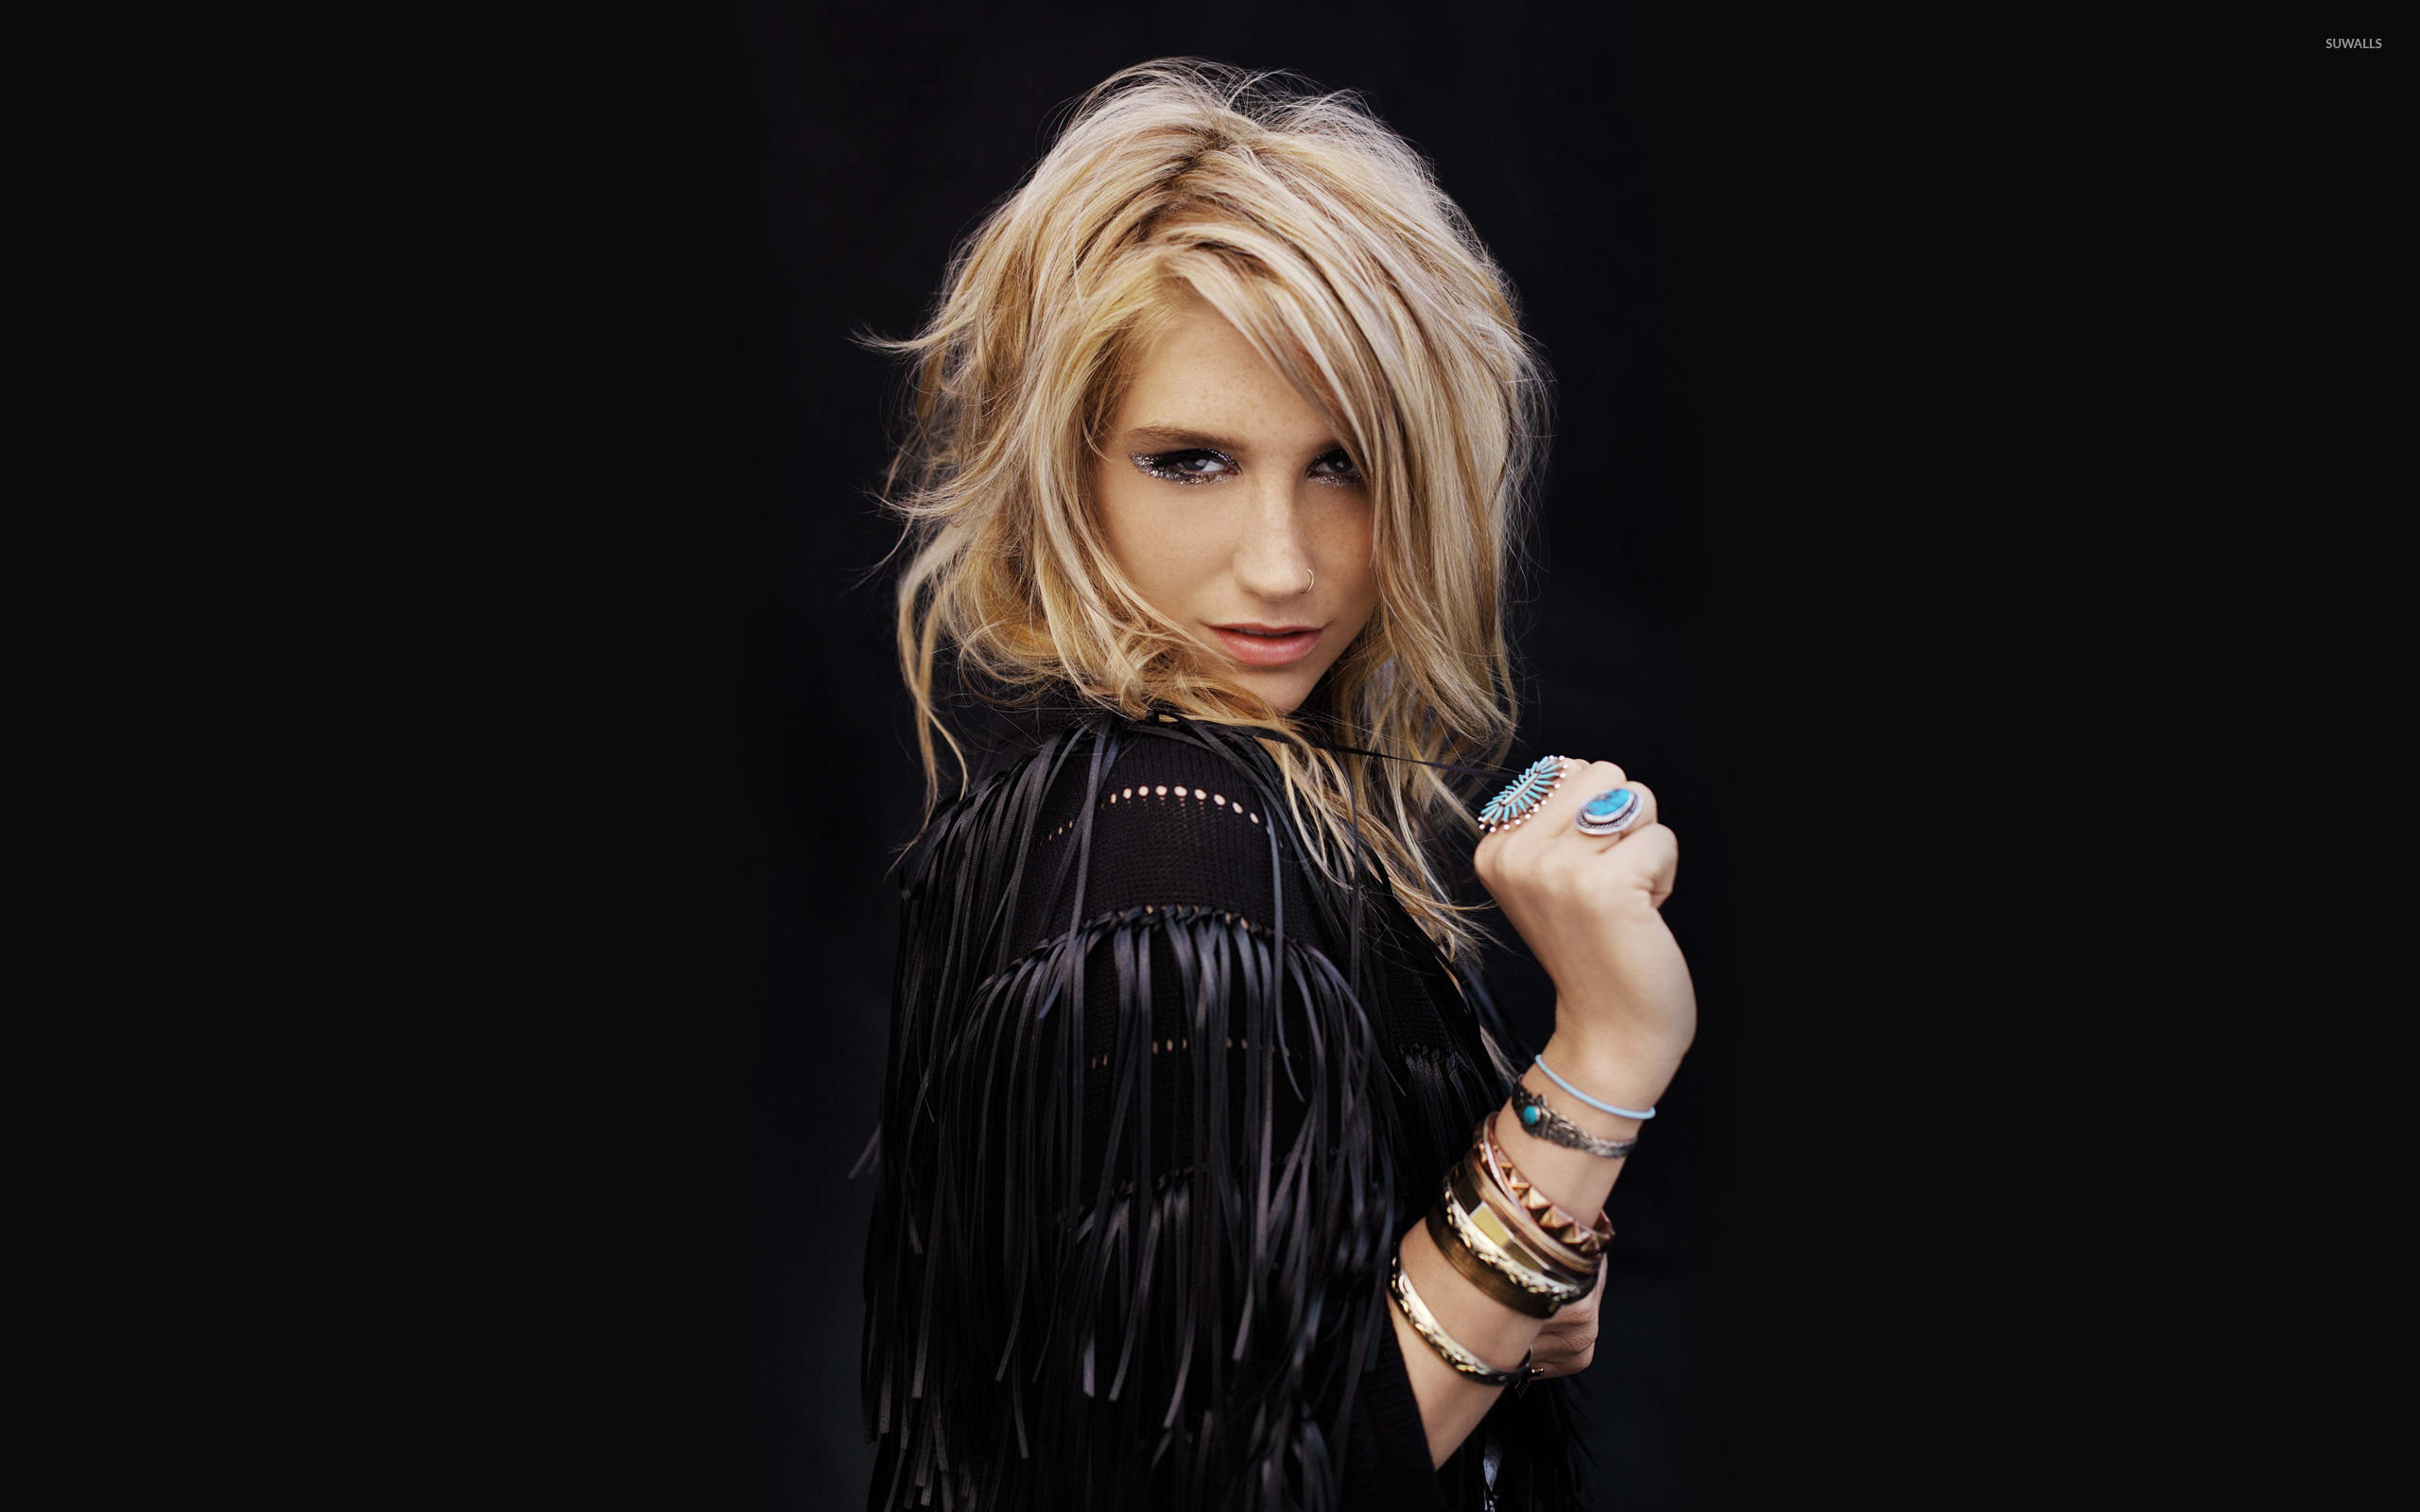 Kesha wallpaper   Celebrity wallpapers   11257 1680x1050